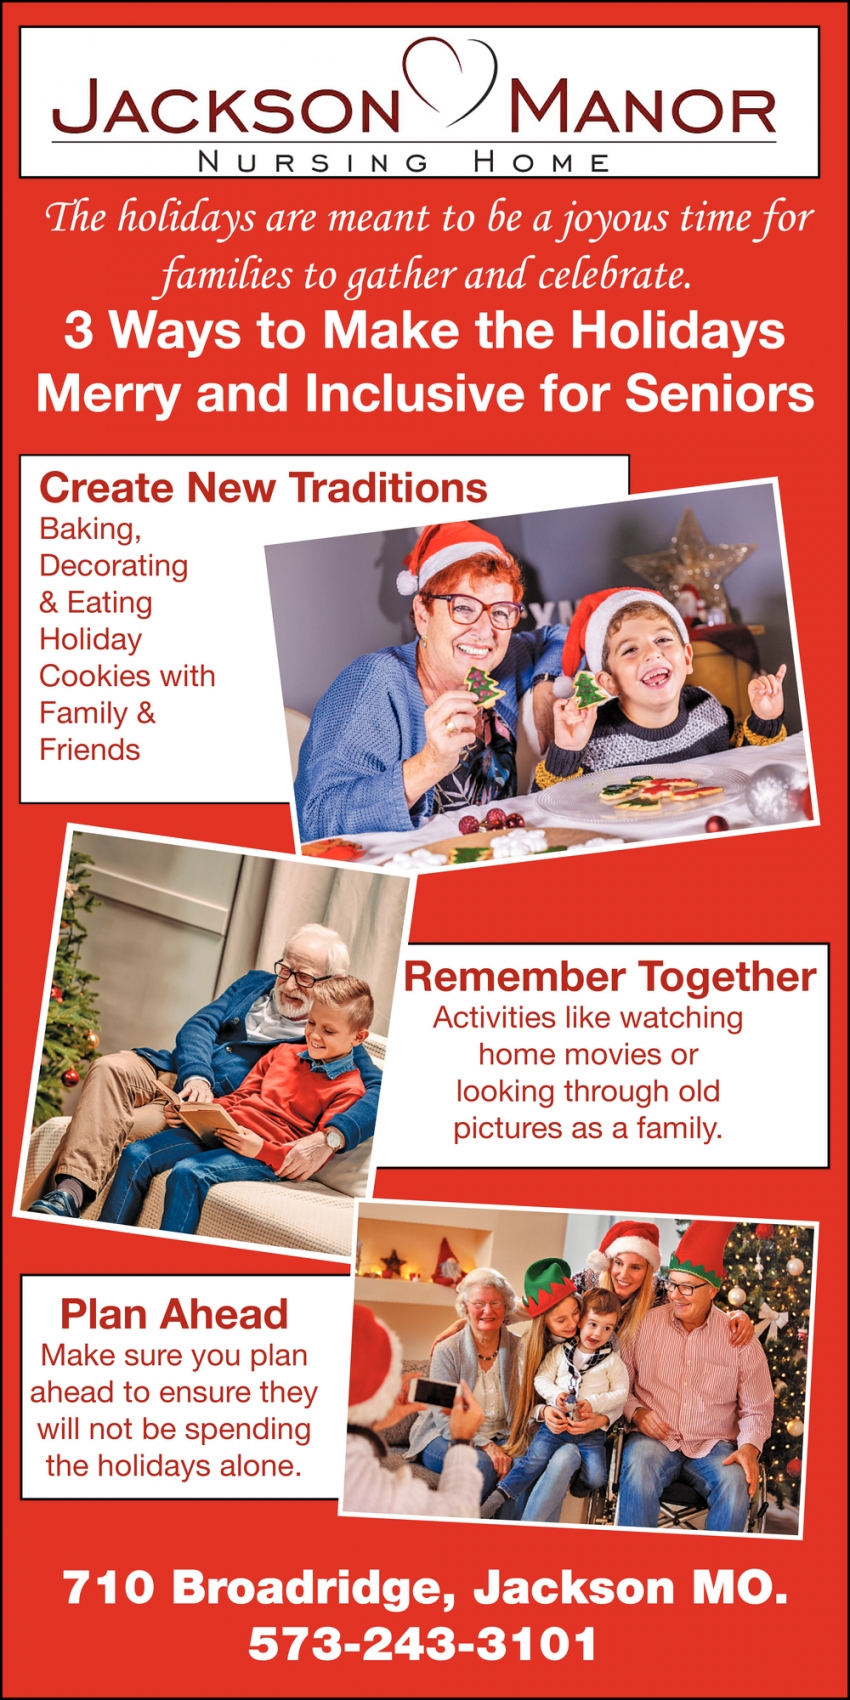 3 Ways to Make the Holidays Merry and Inclusive for Seniors